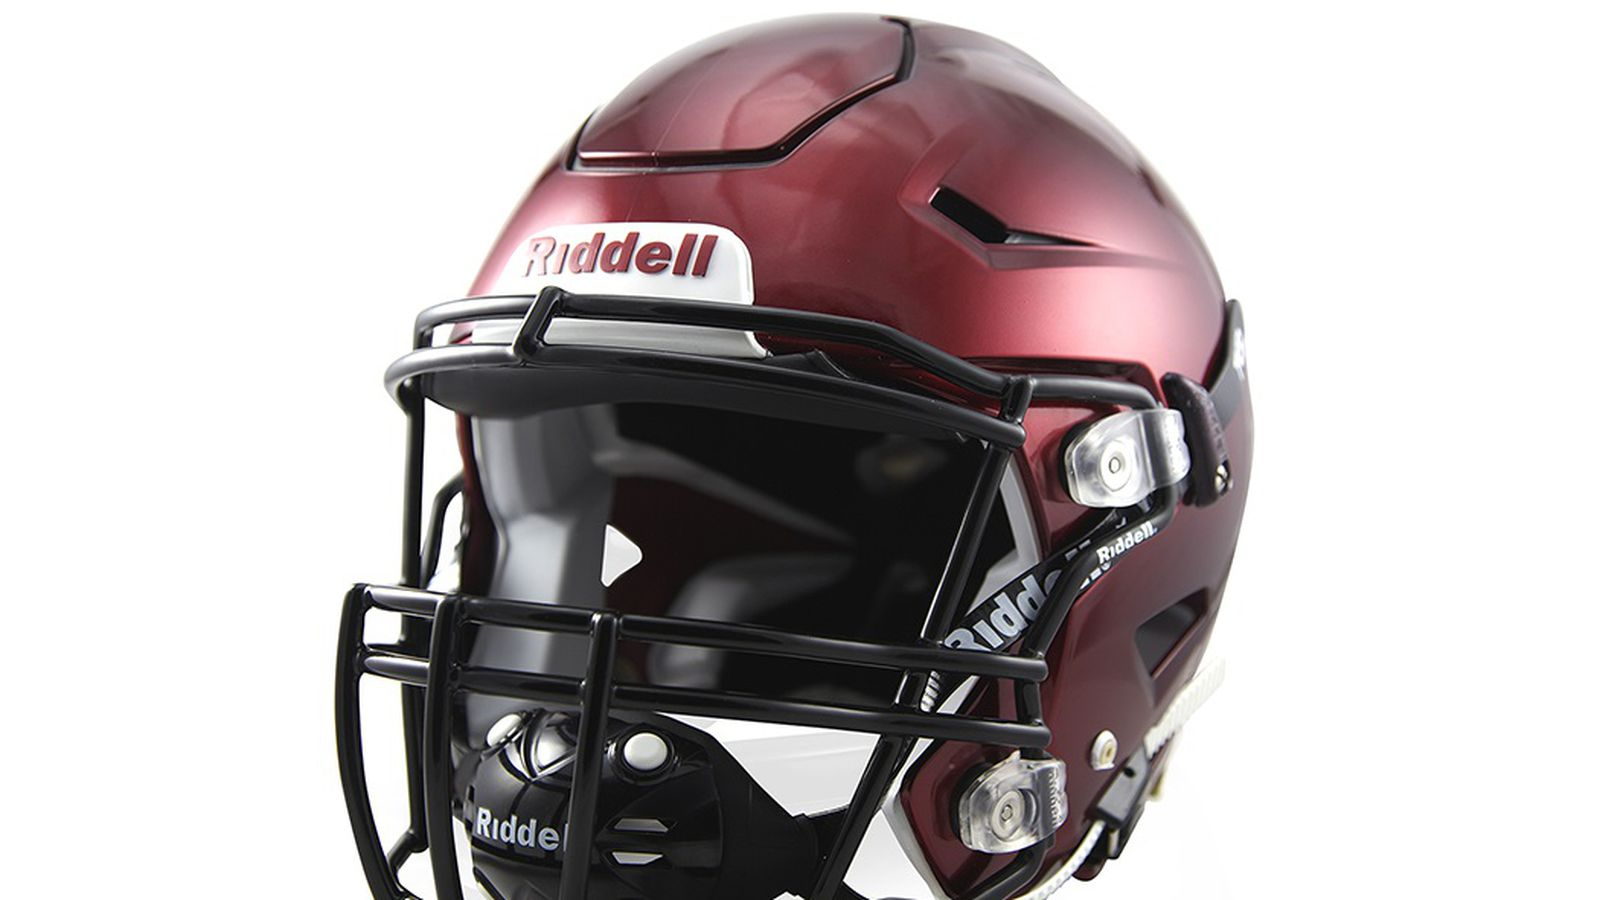 New Riddell Speedflex Football Helmet Pits Technology Vs